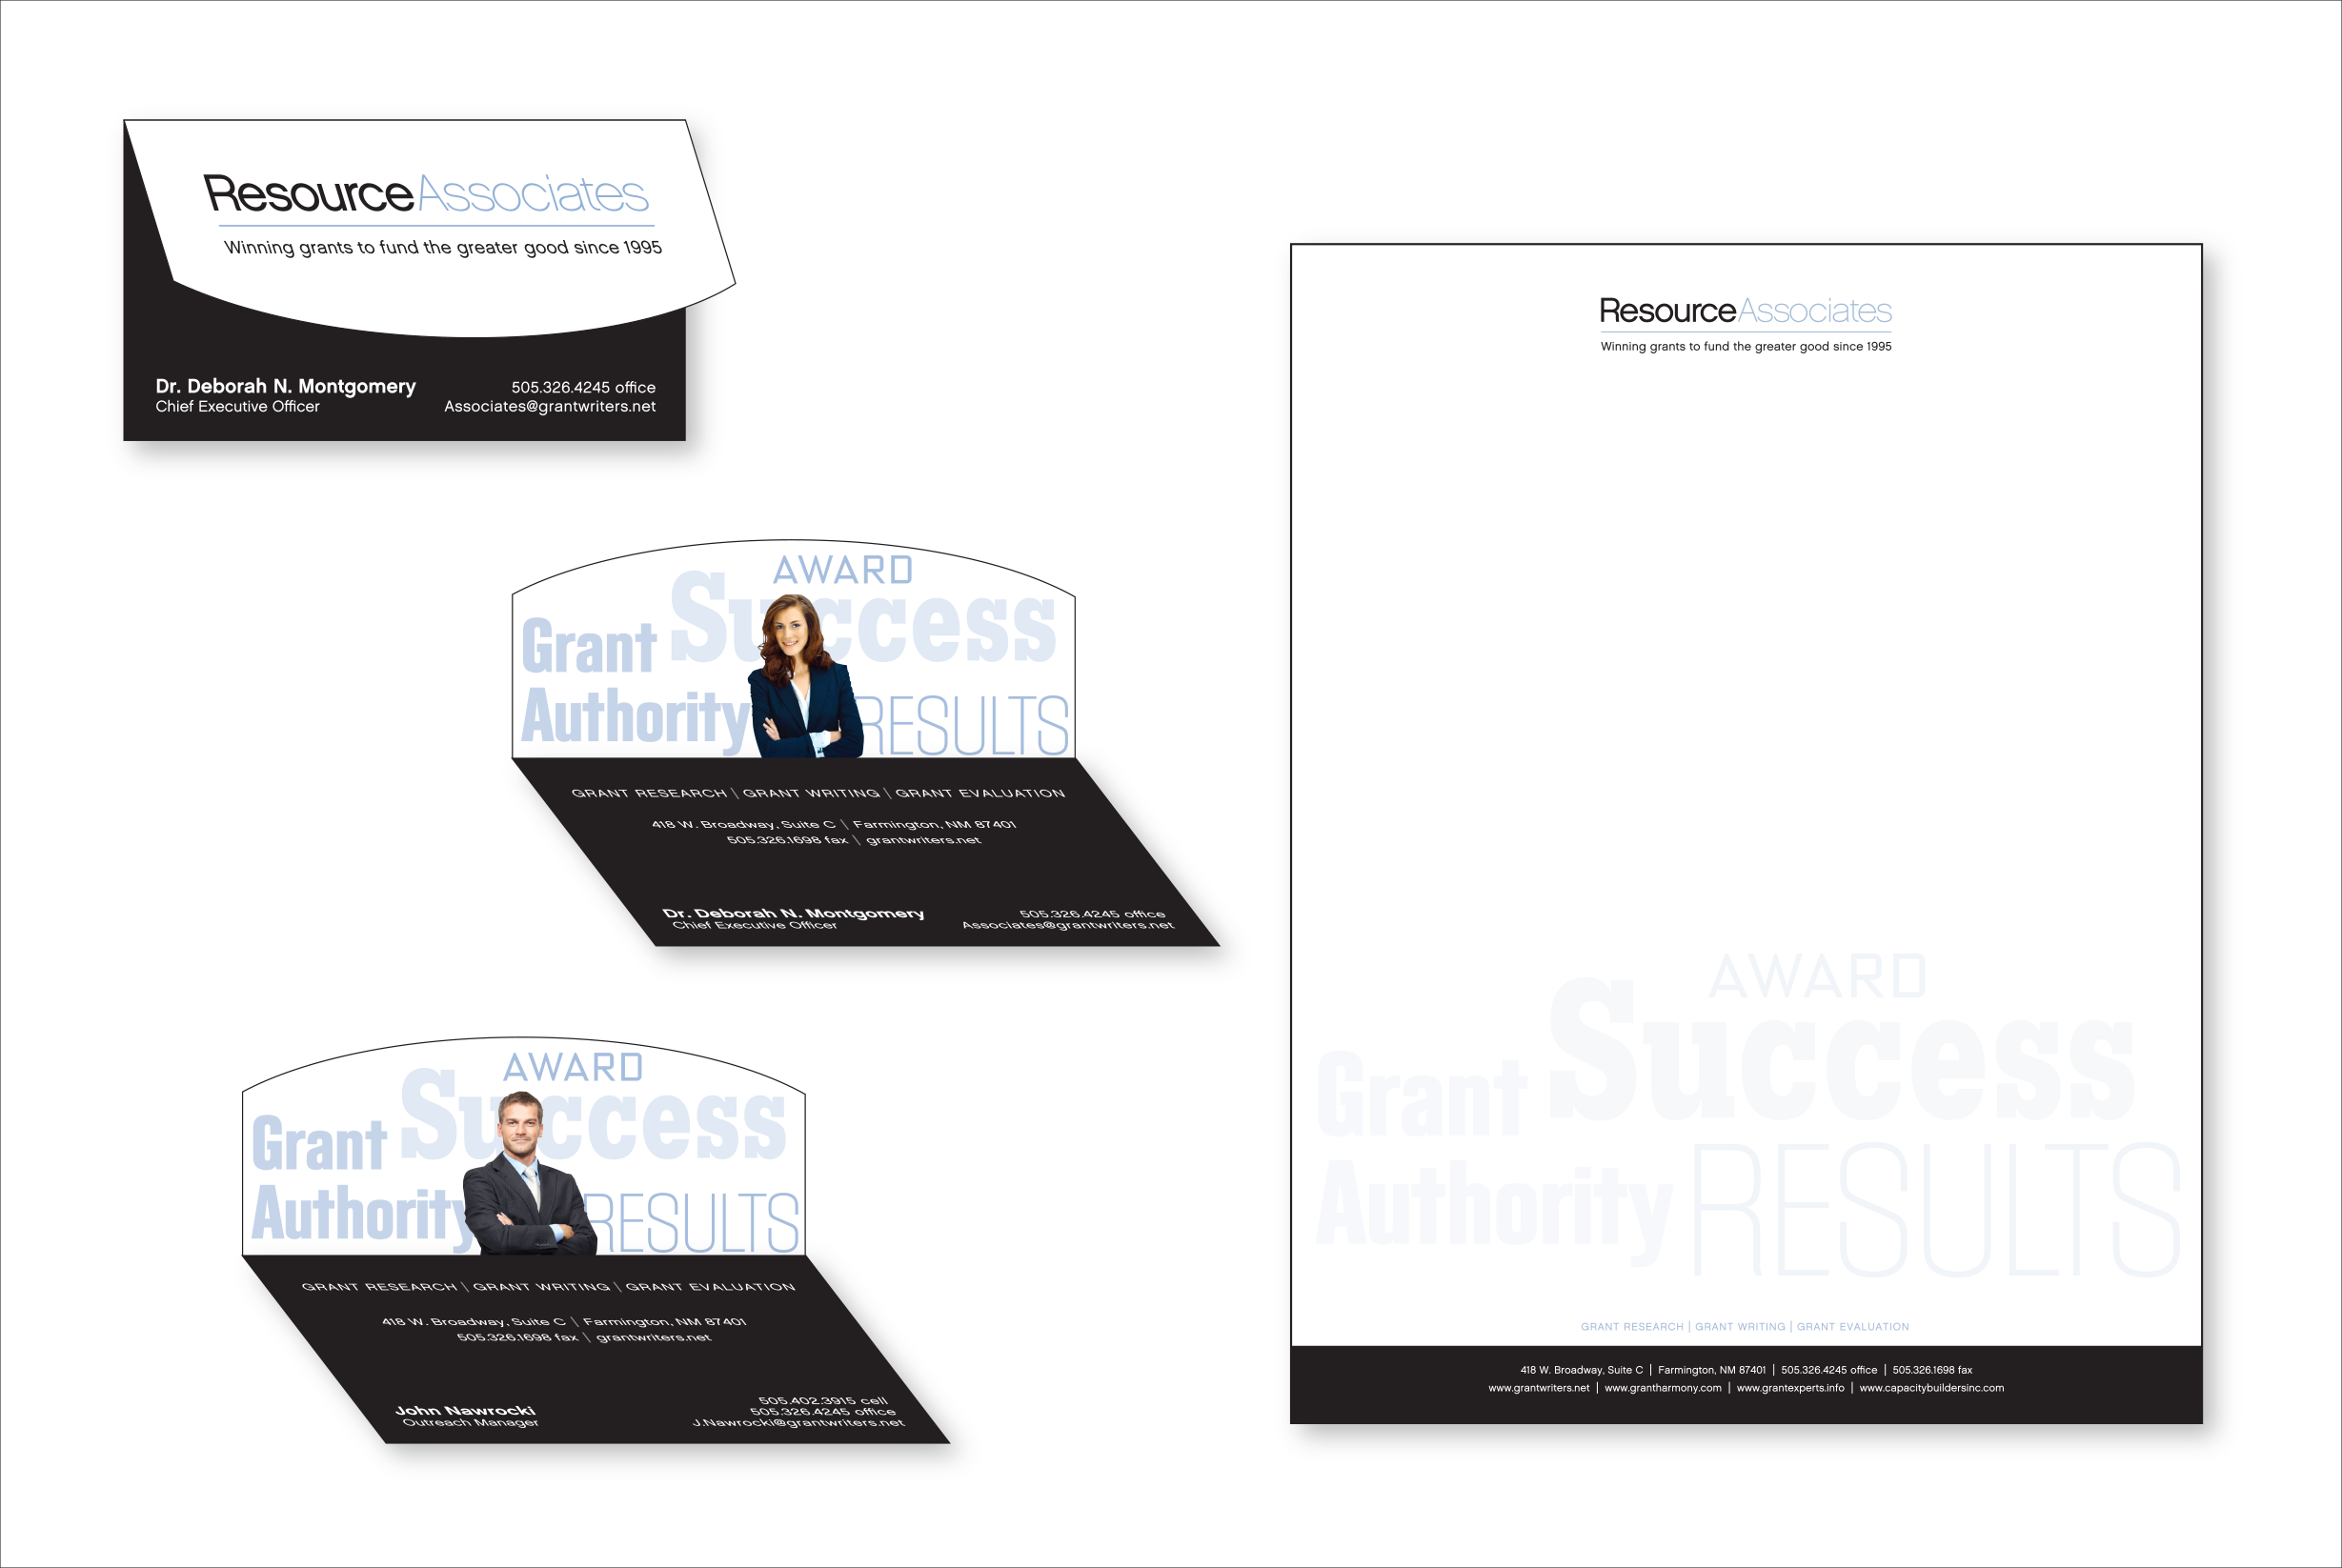 Resource Associates Stationery